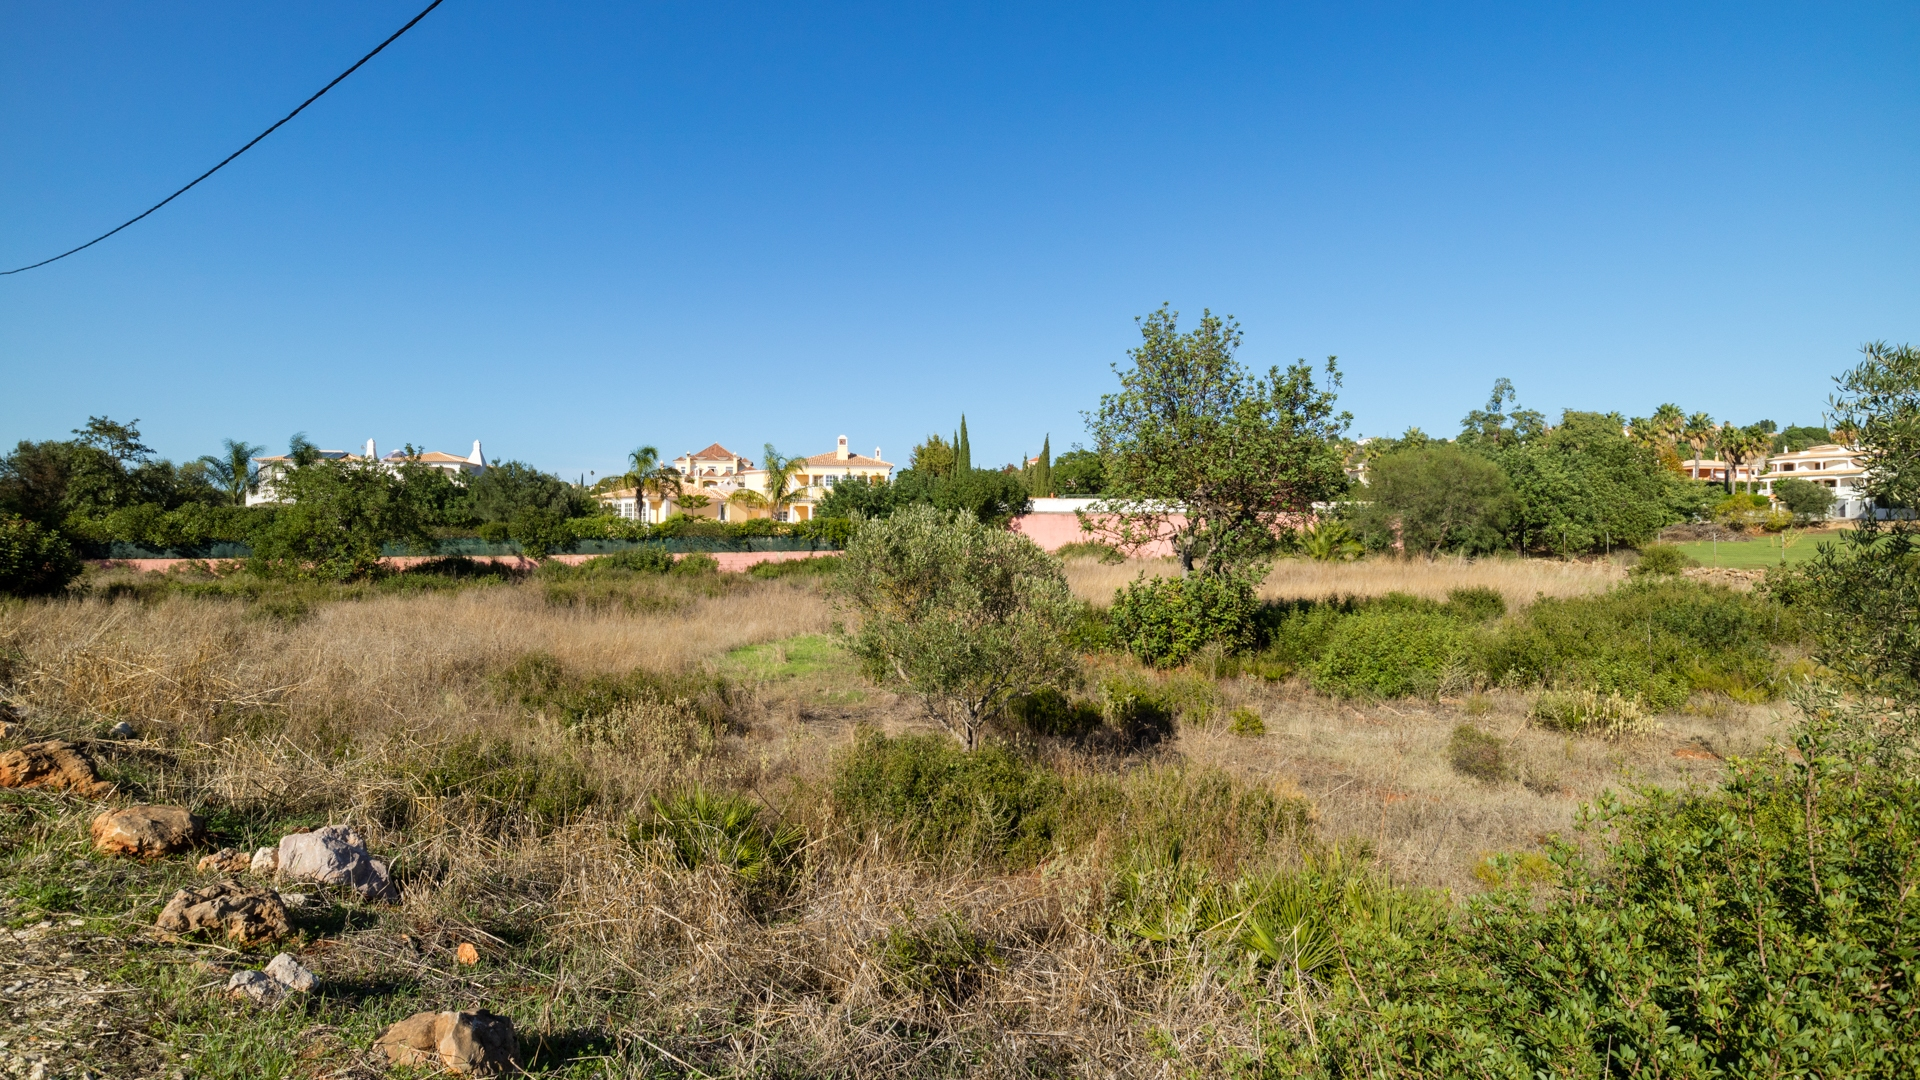 2 Plots with Building Permission in Golden Triangle, Almancil | VM1244 2 plots within the Golden Triangle at Vale Formoso, Almancil with building permission and countryside views.